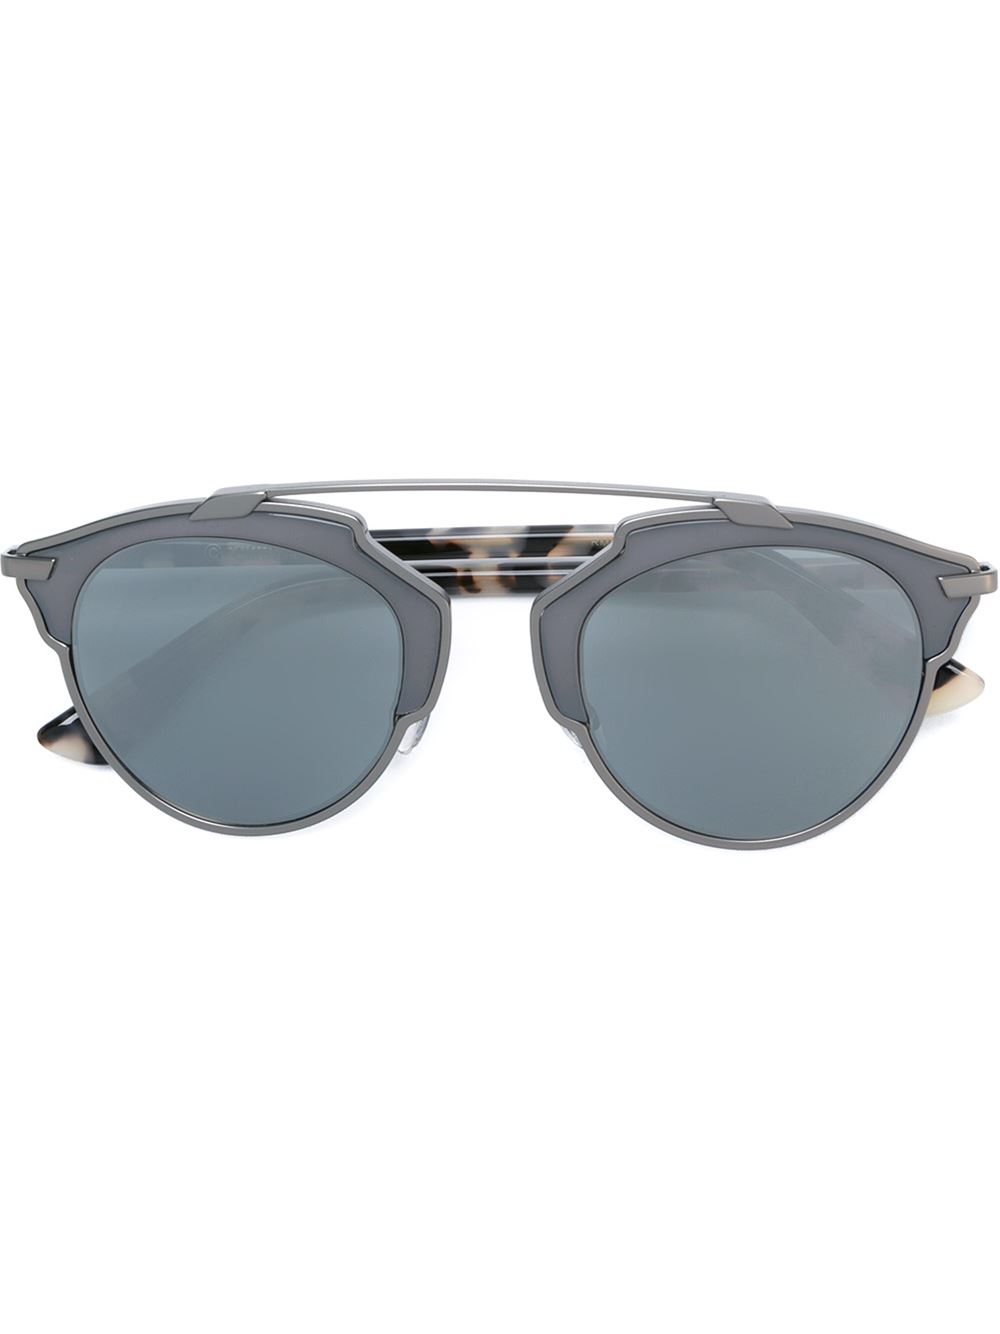 Glasses Frame Dior : Dior Round Frame Sunglasses in Brown Lyst